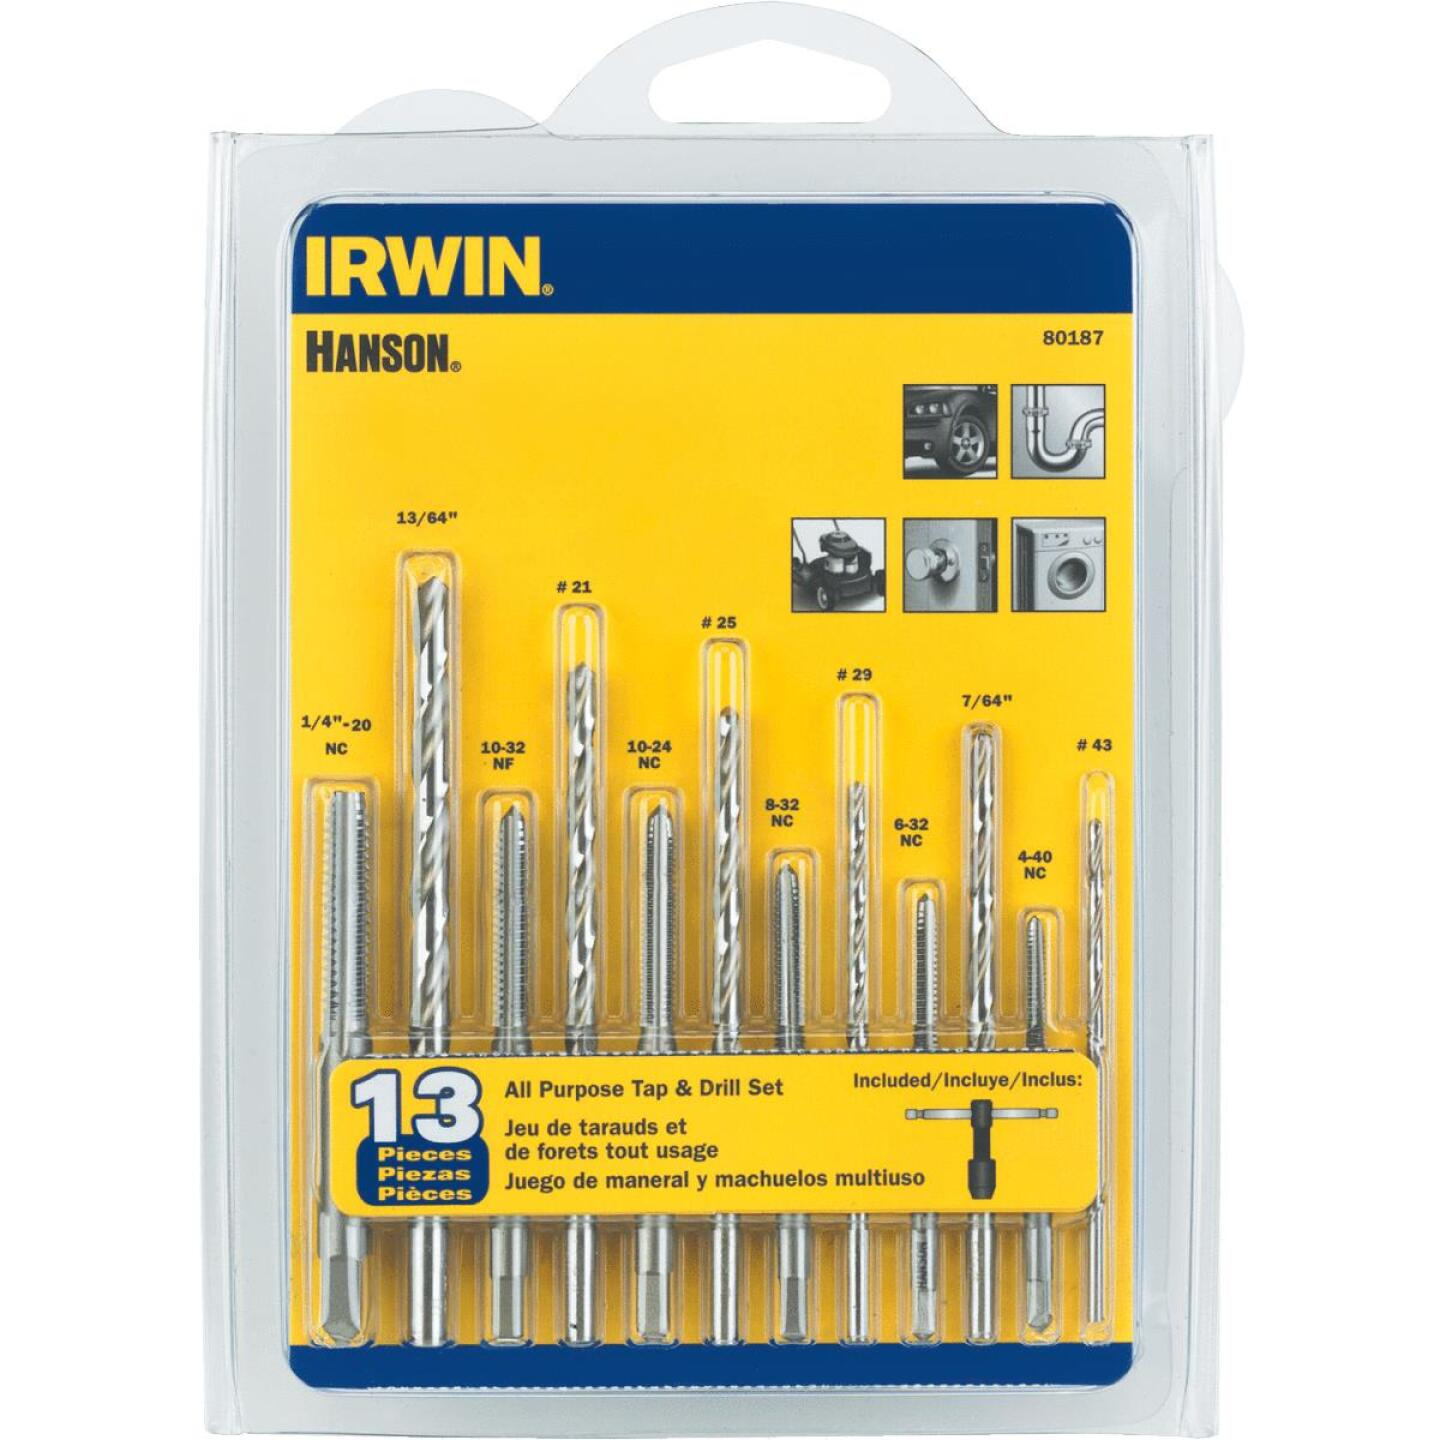 Irwin Hanson 13-Piece All-Purpose Tap & Drill Bit Set Image 1